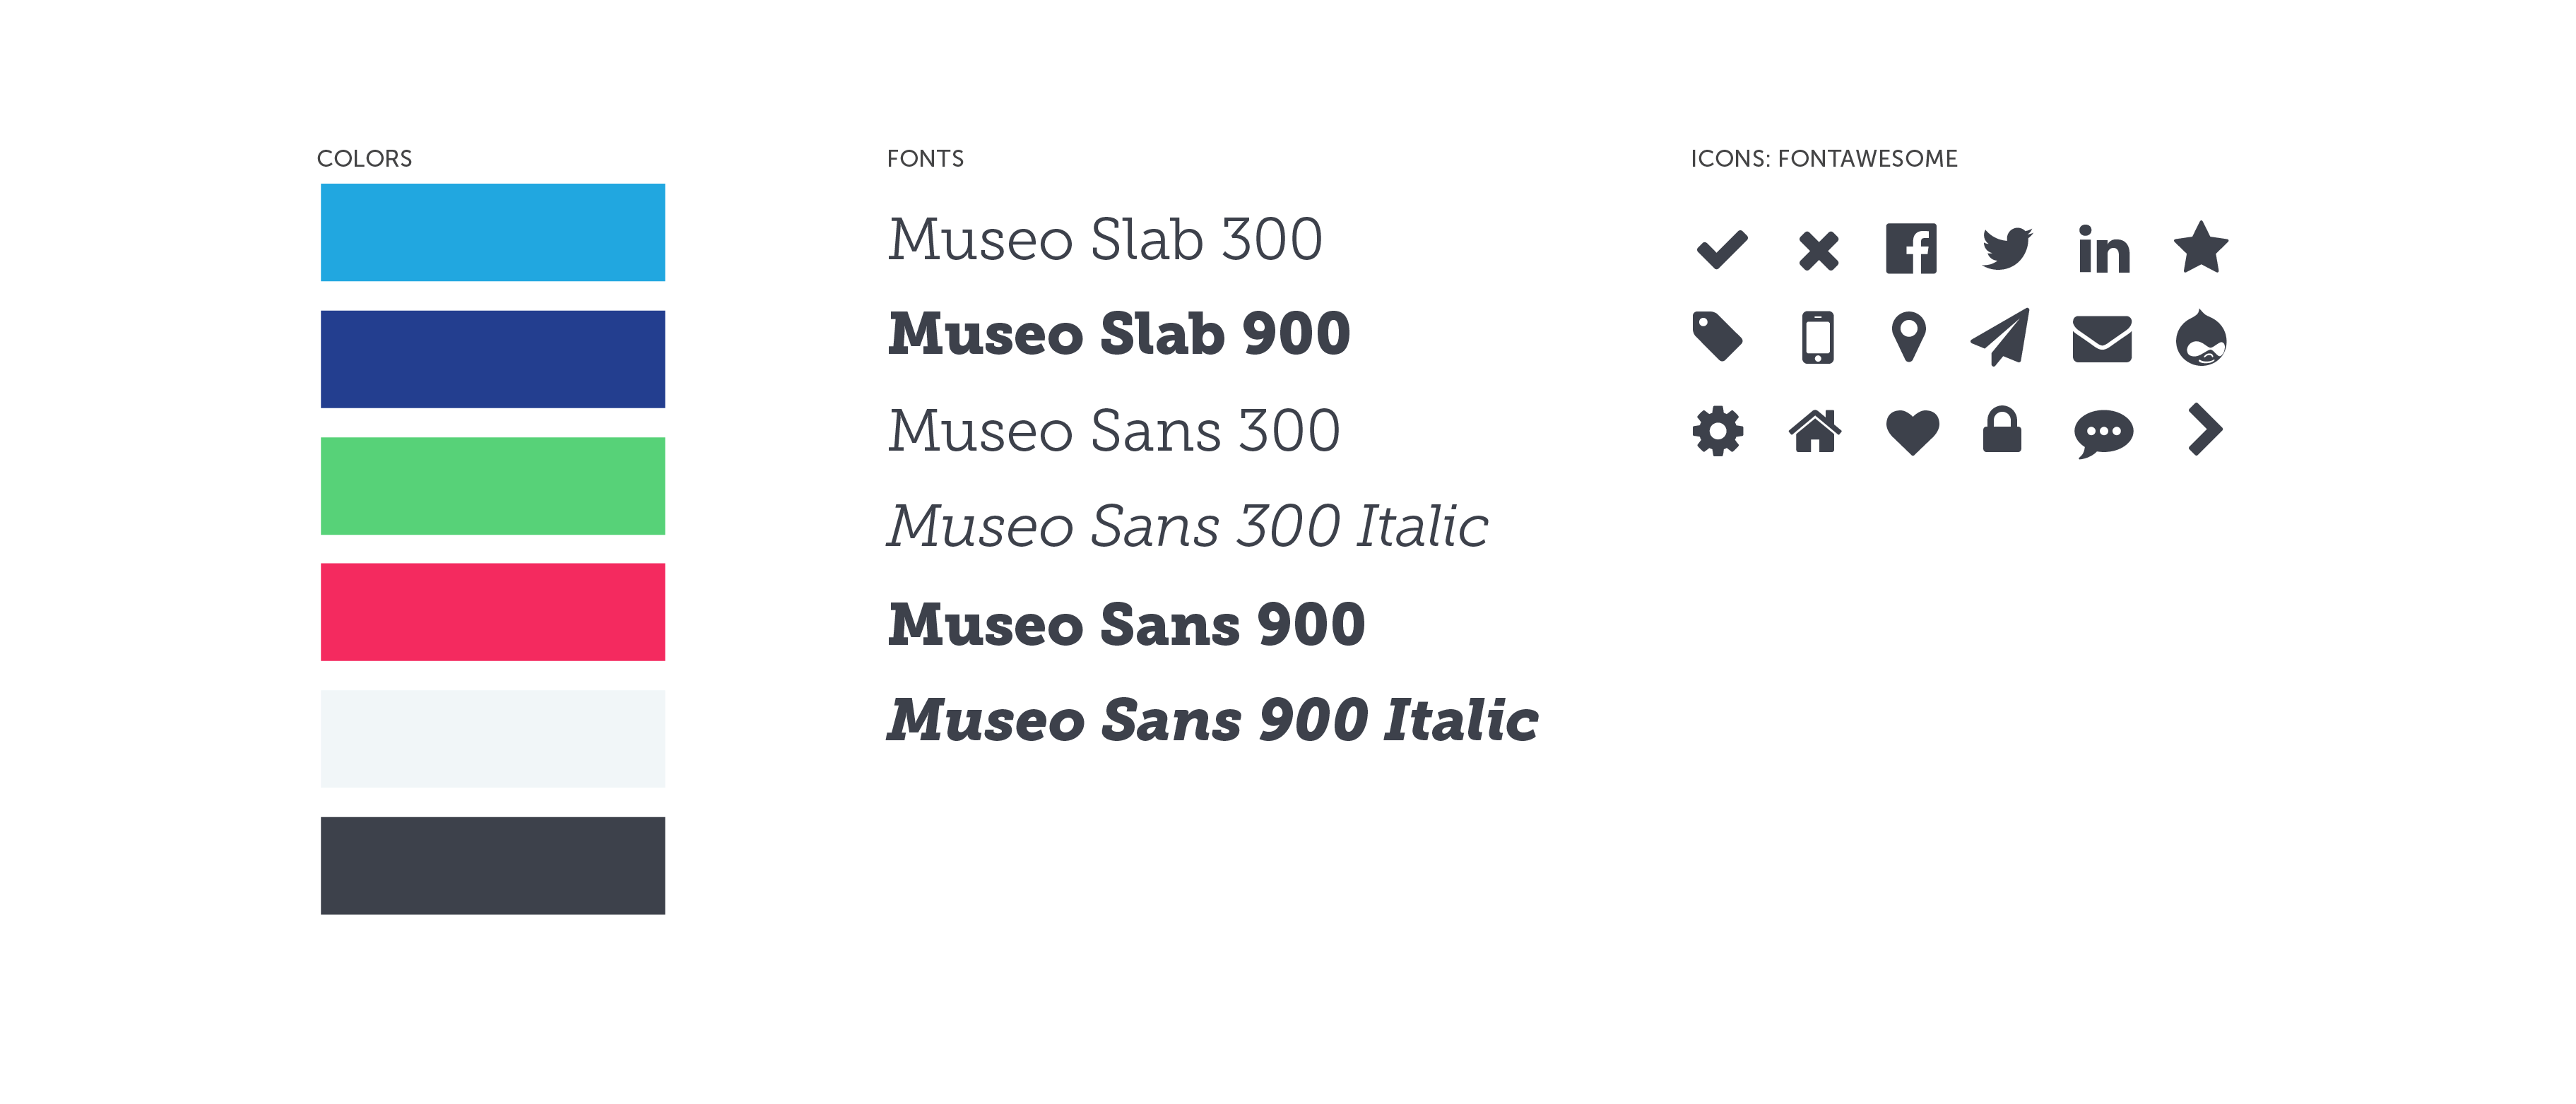 An example of defining colors, fonts, and icons used within a brand system.